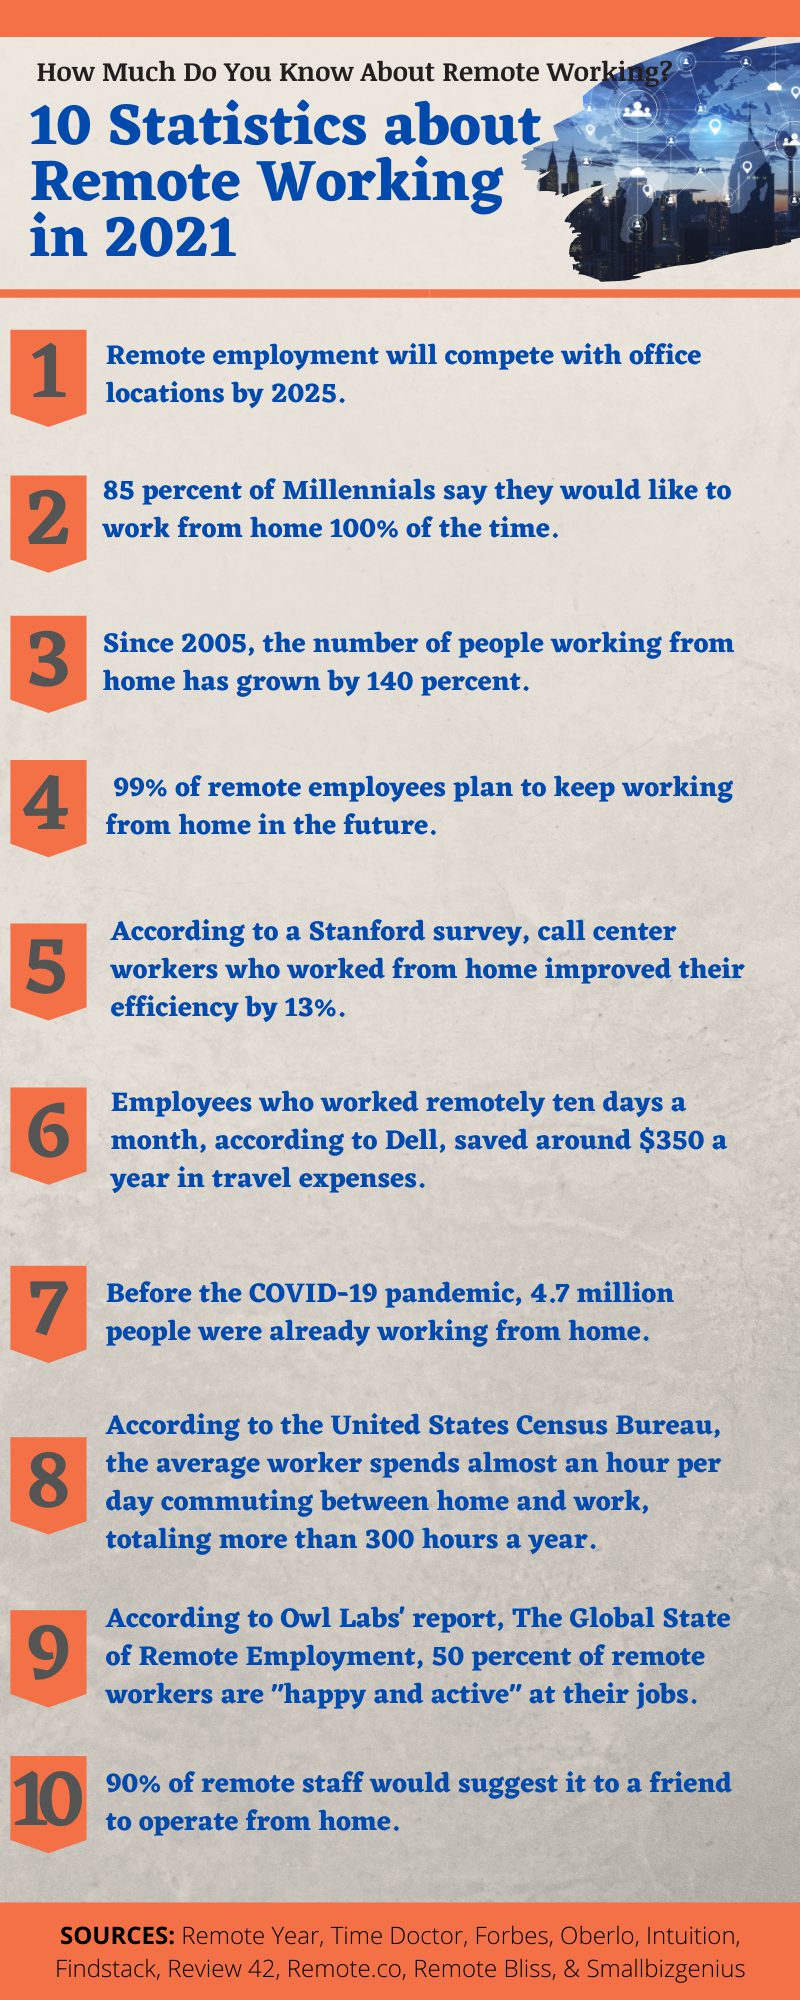 INFOGRAPHIC Victory WorkSpace - 101 Statistics about Remote Working in 2021